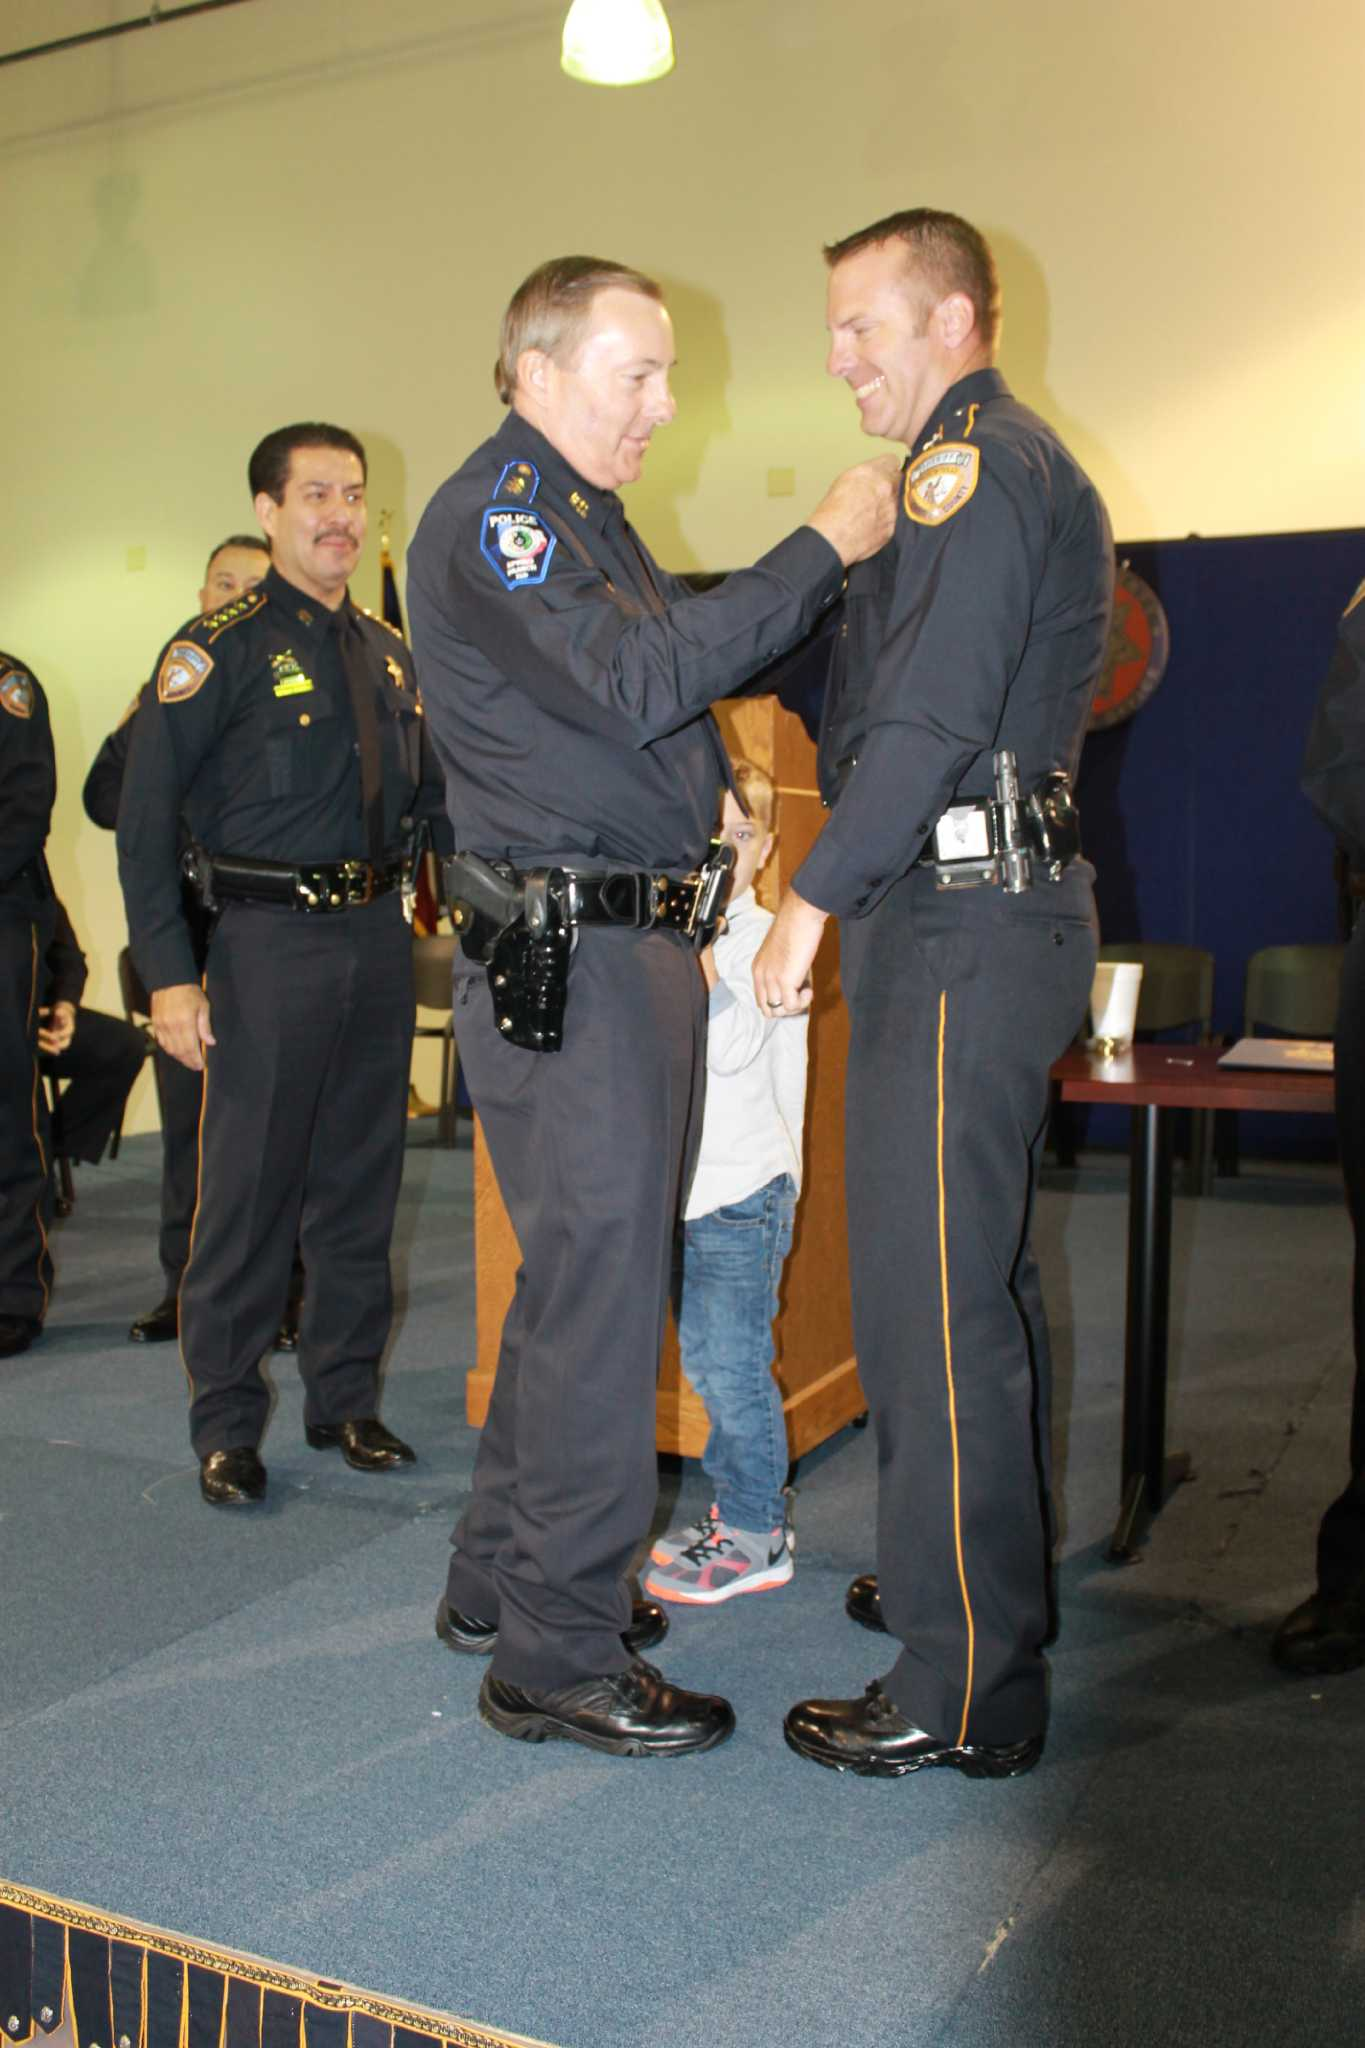 Brian Brawner appointed sergeant - Houston Chronicle